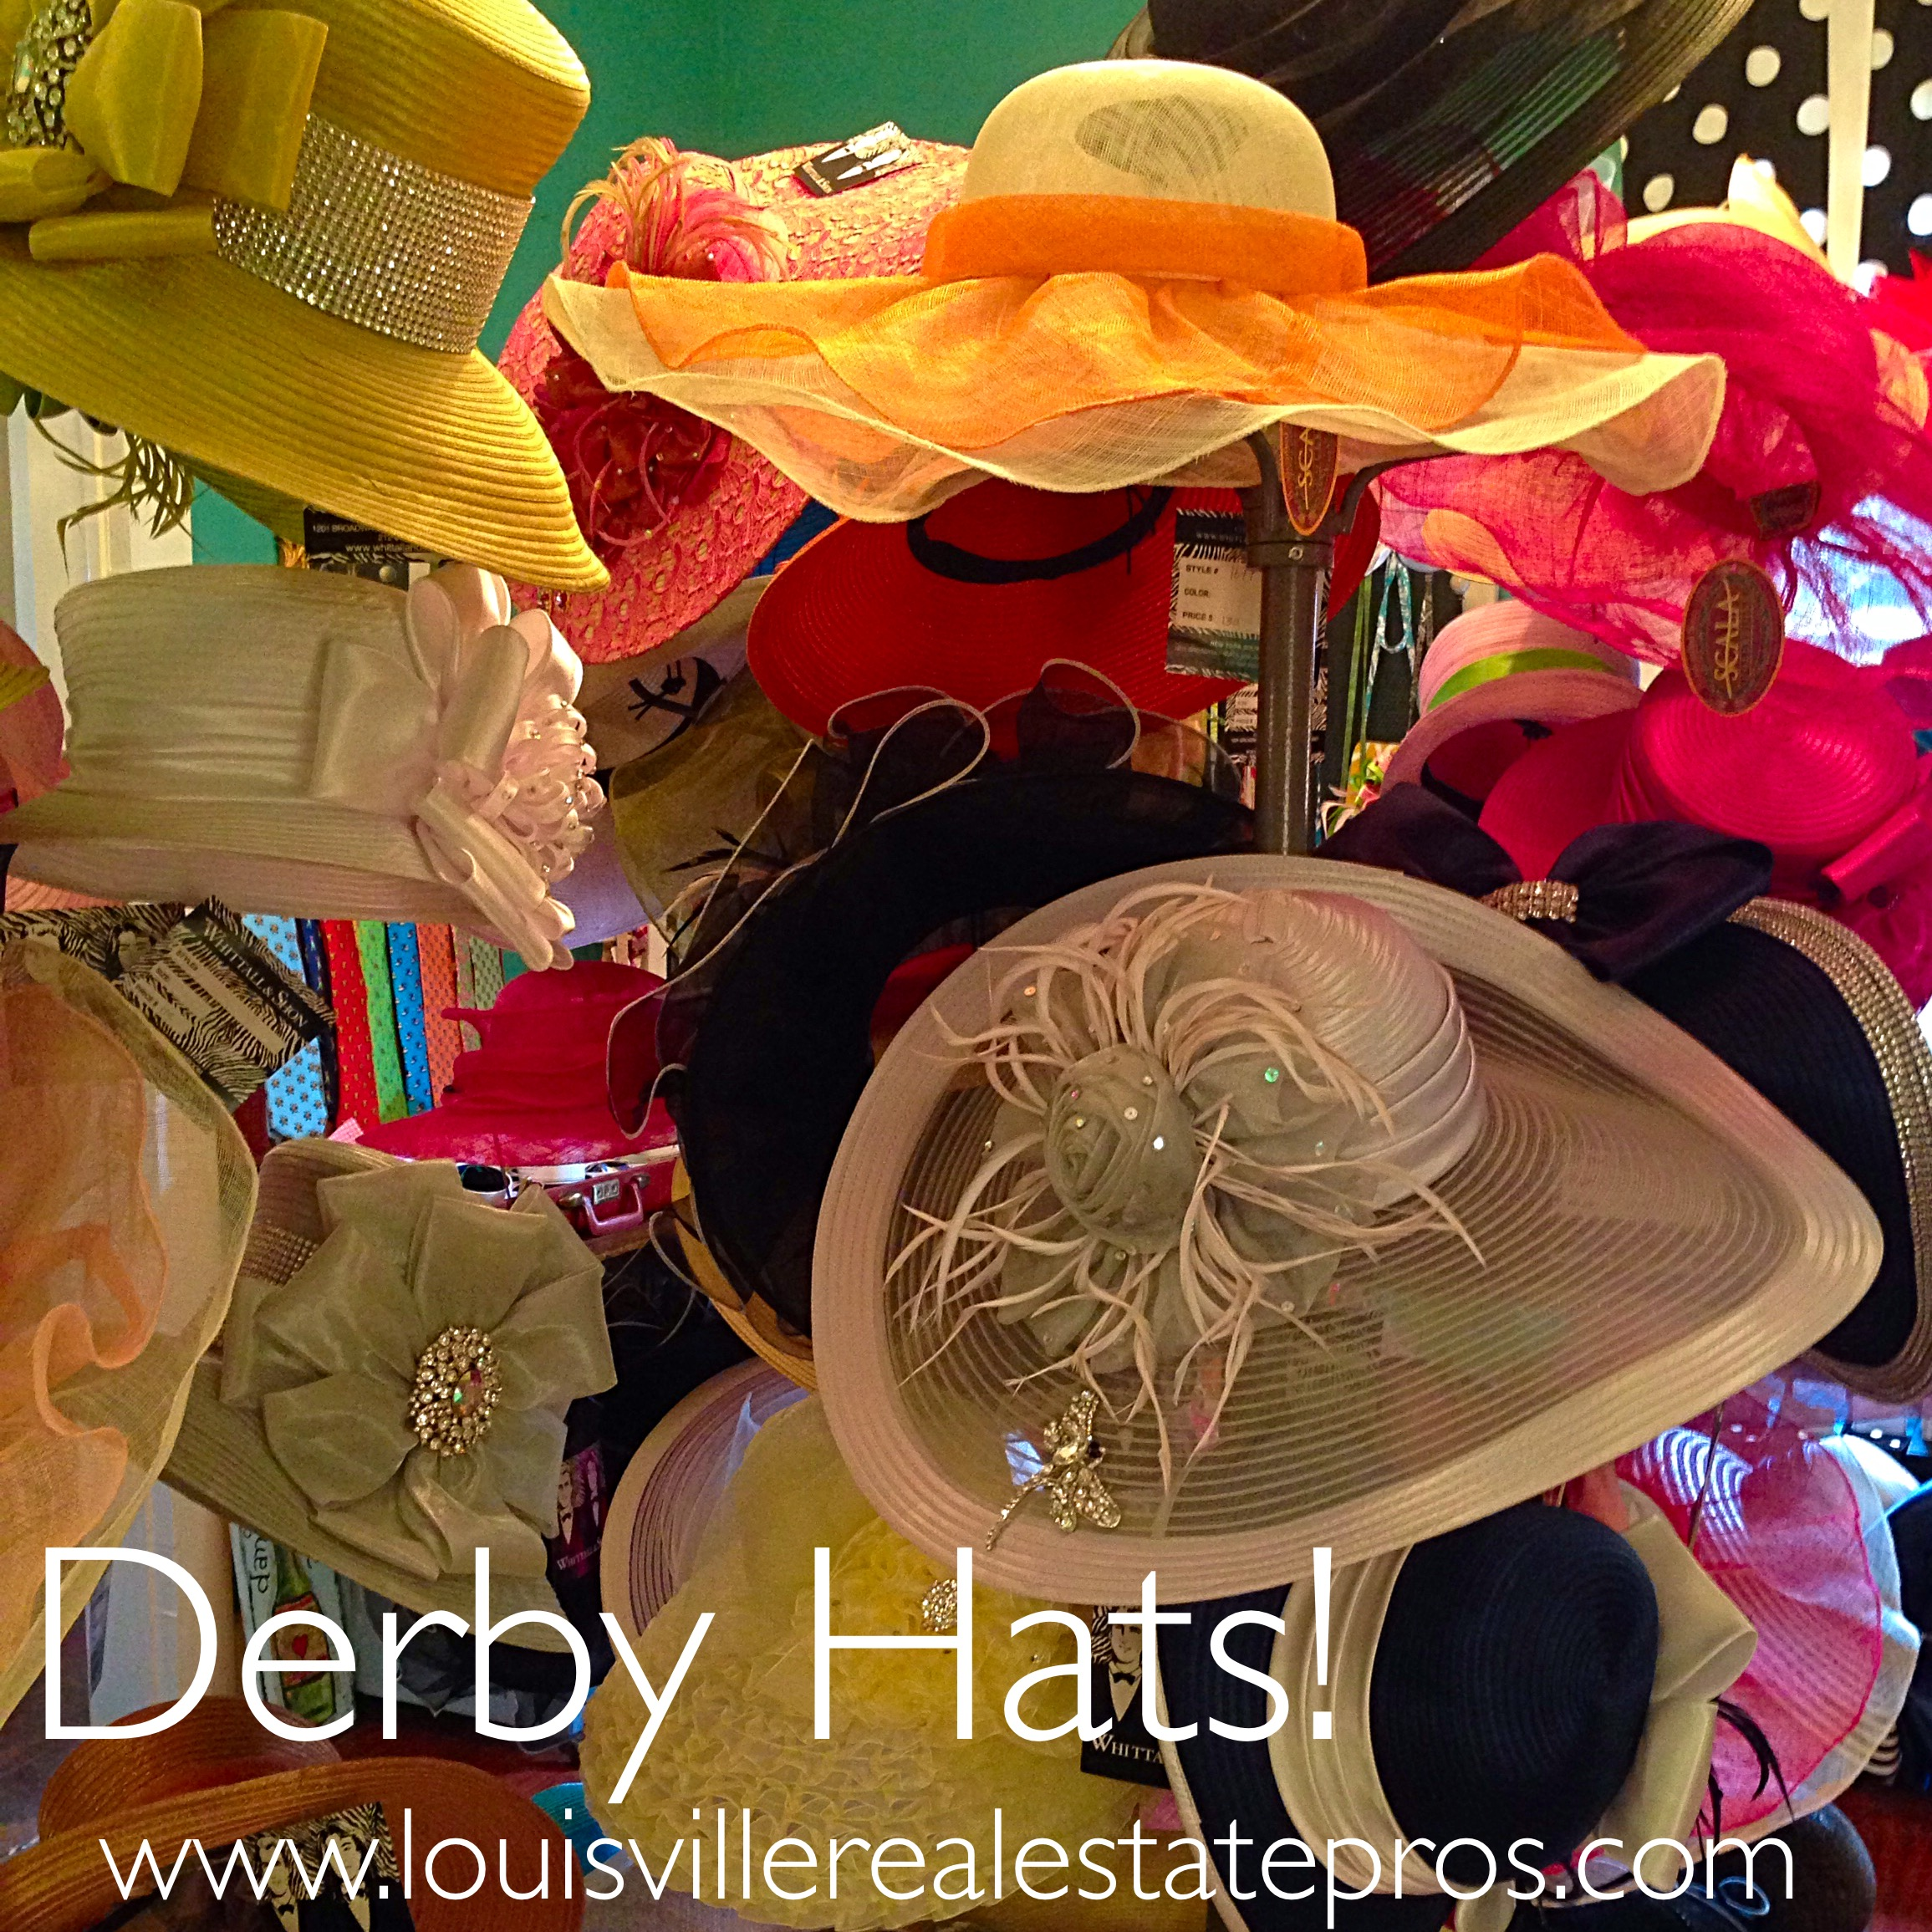 Celebrate Derby on a Budget with The Prickly Pear Boutique